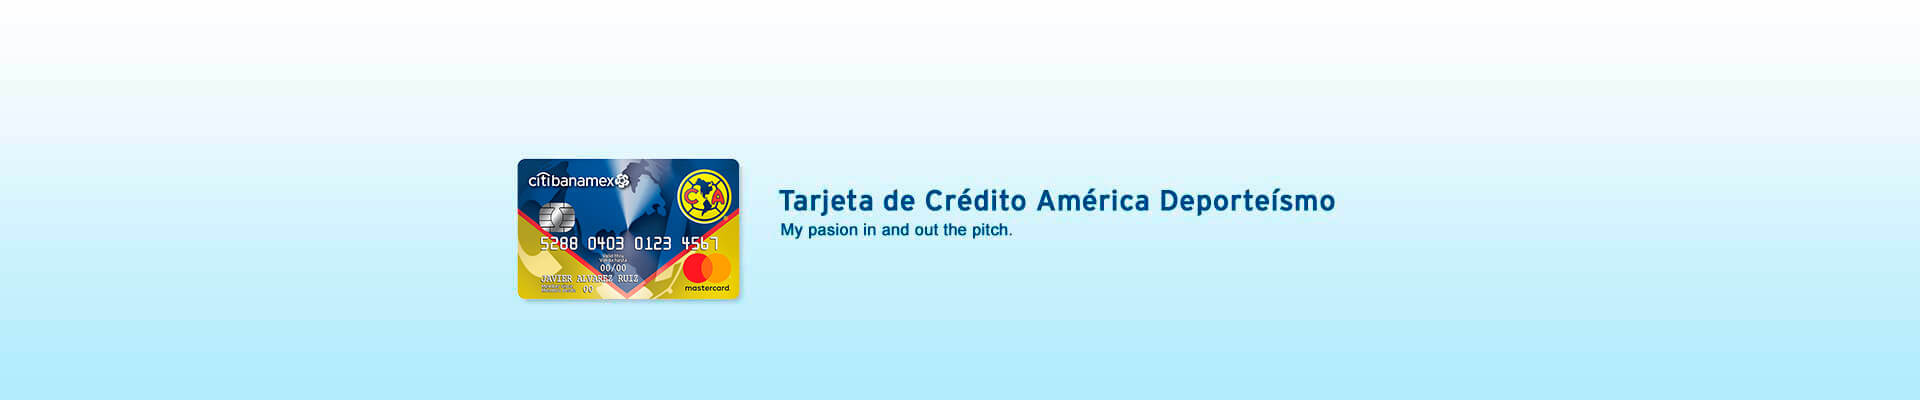 My passion with the América Deporteísmo Credit Card